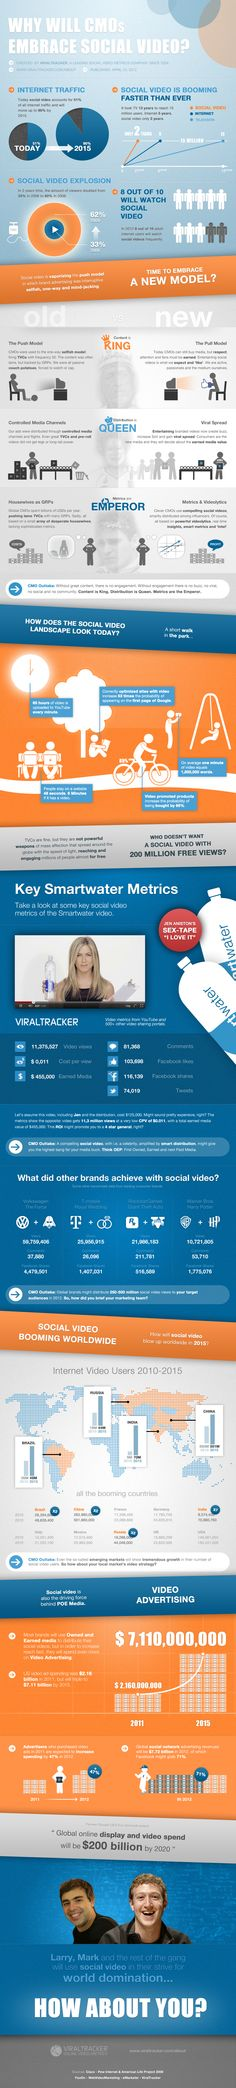 Social video infographic.